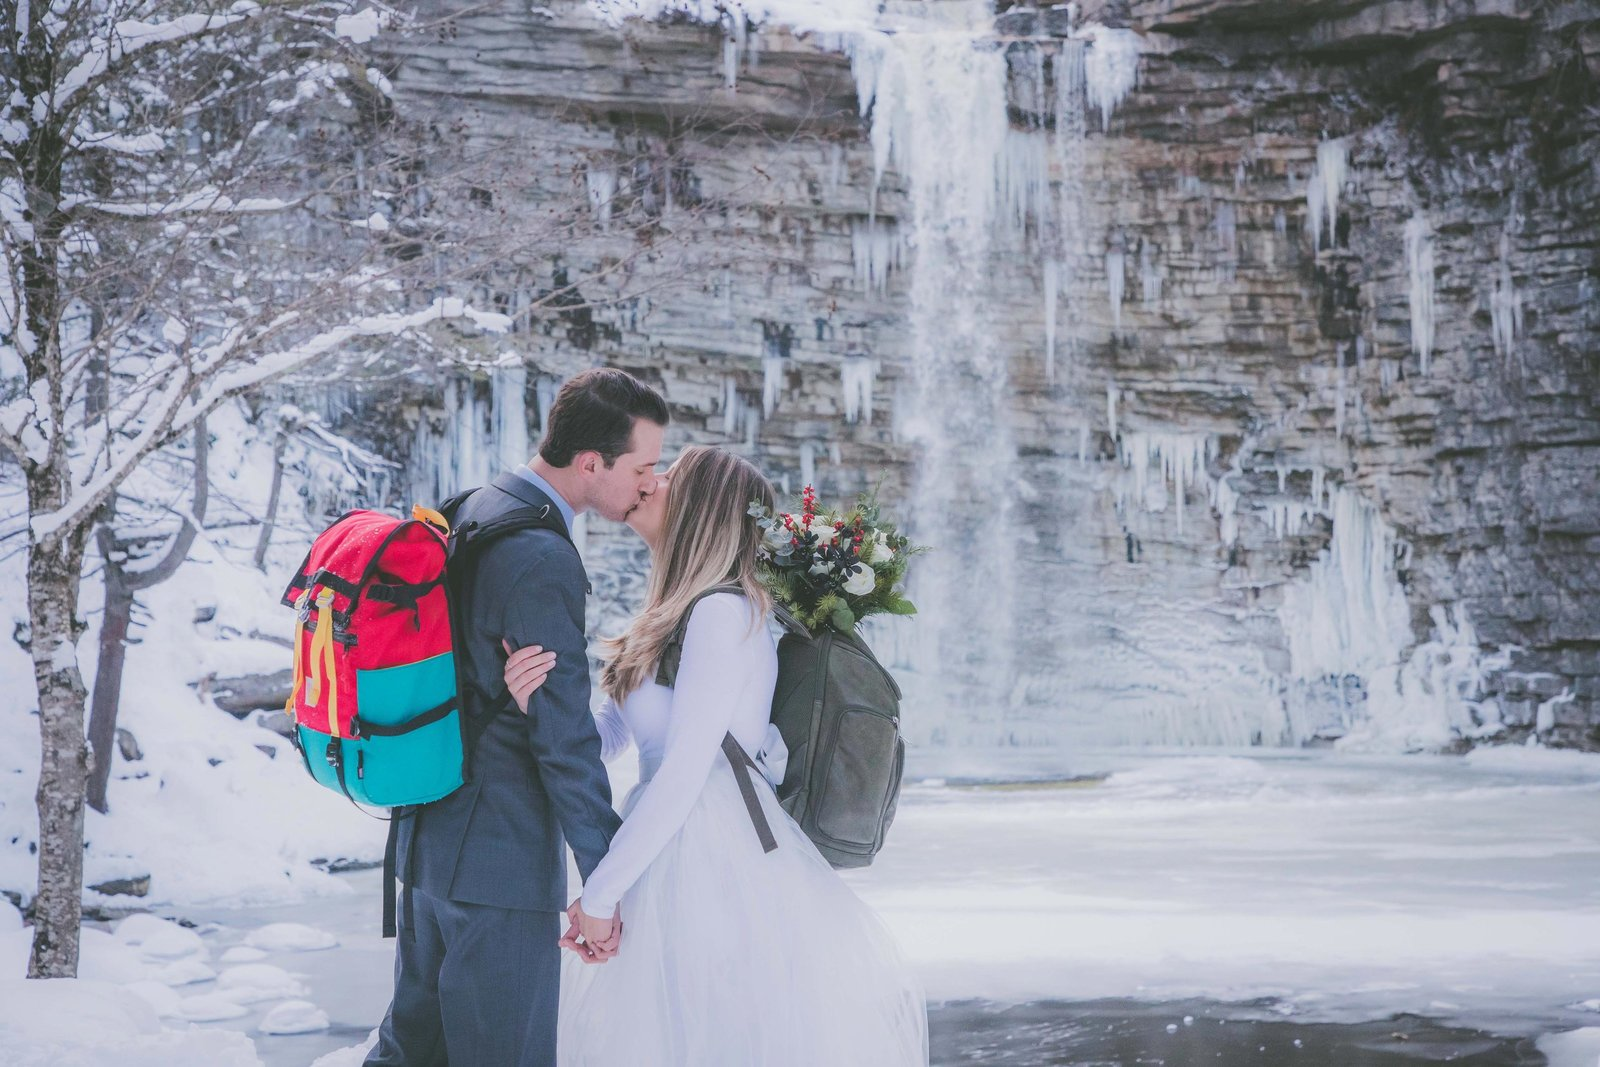 Groom and bride wear backpacks and kiss with New York waterfall in background.